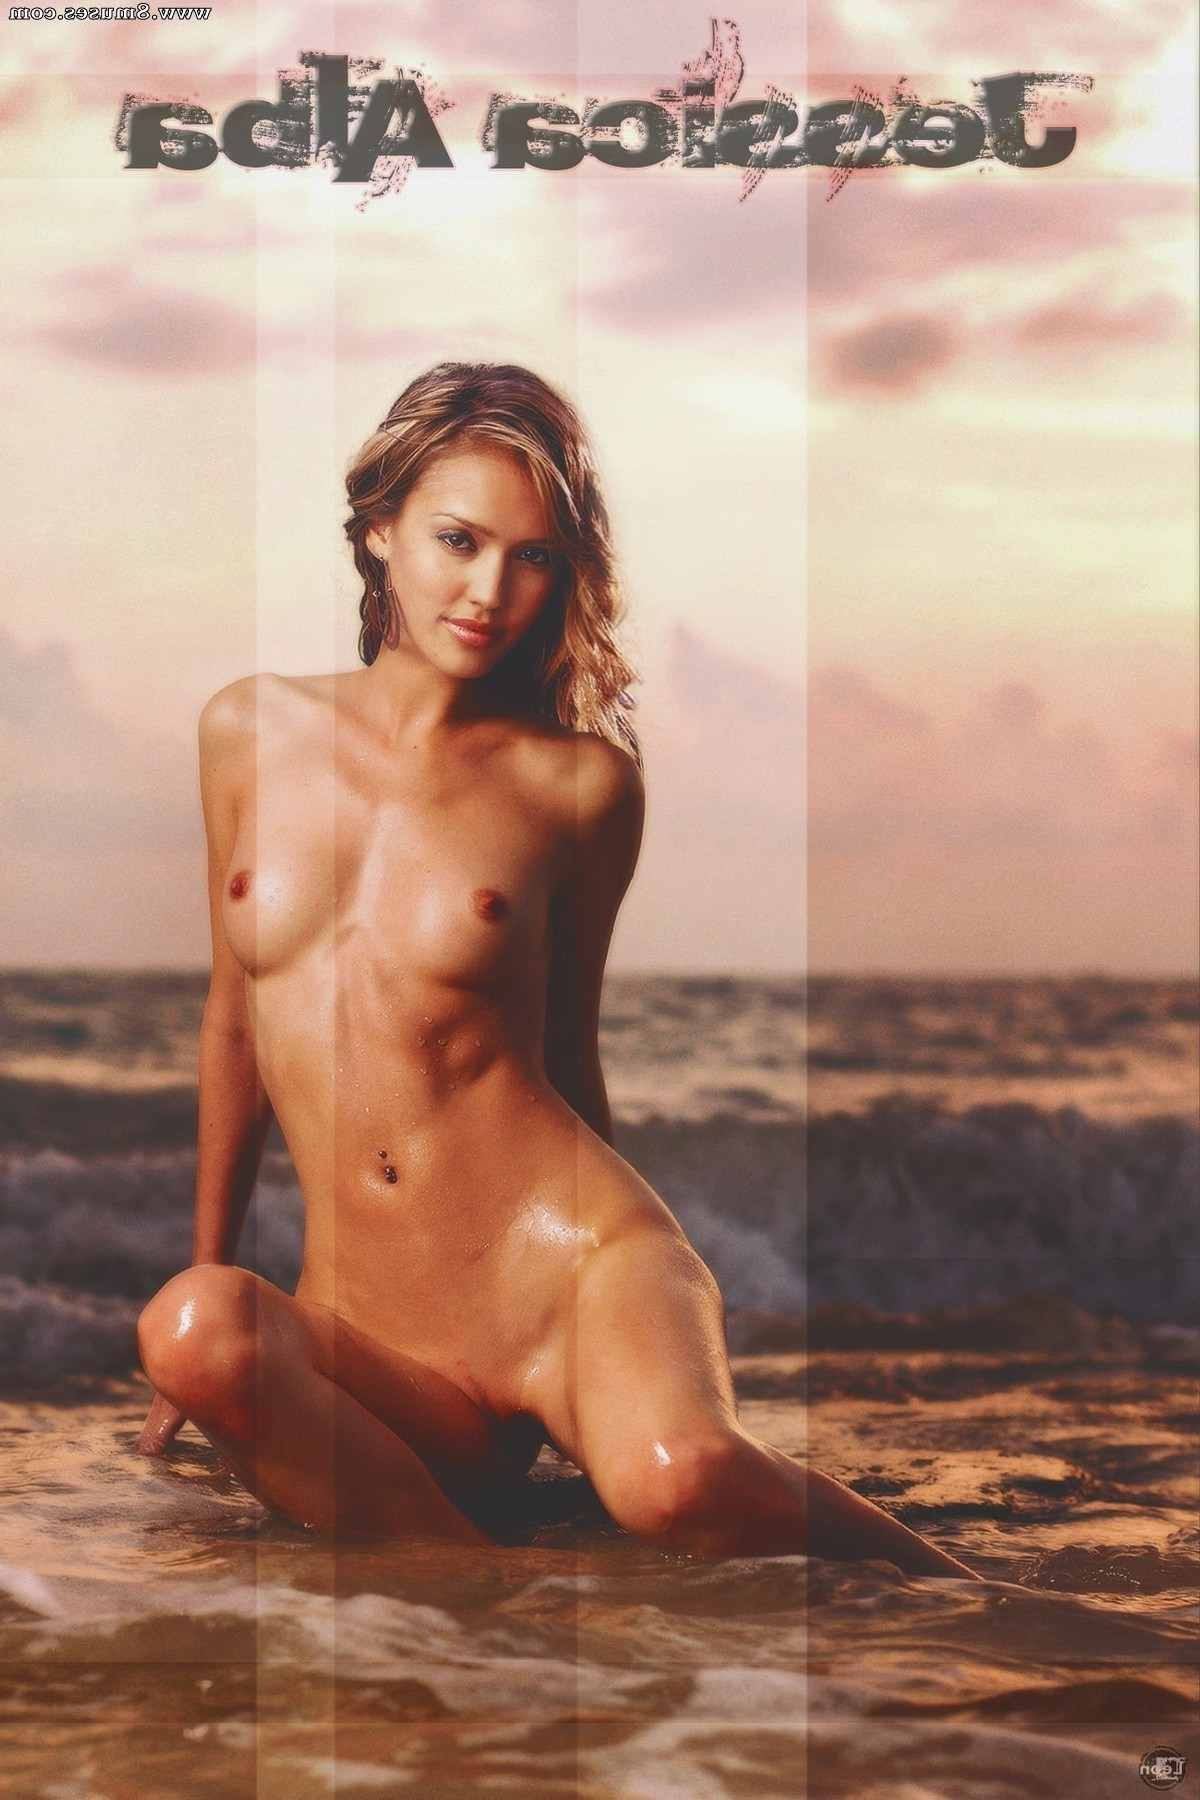 Fake-Celebrities-Sex-Pictures/Jessica-Alba Jessica_Alba__8muses_-_Sex_and_Porn_Comics_439.jpg